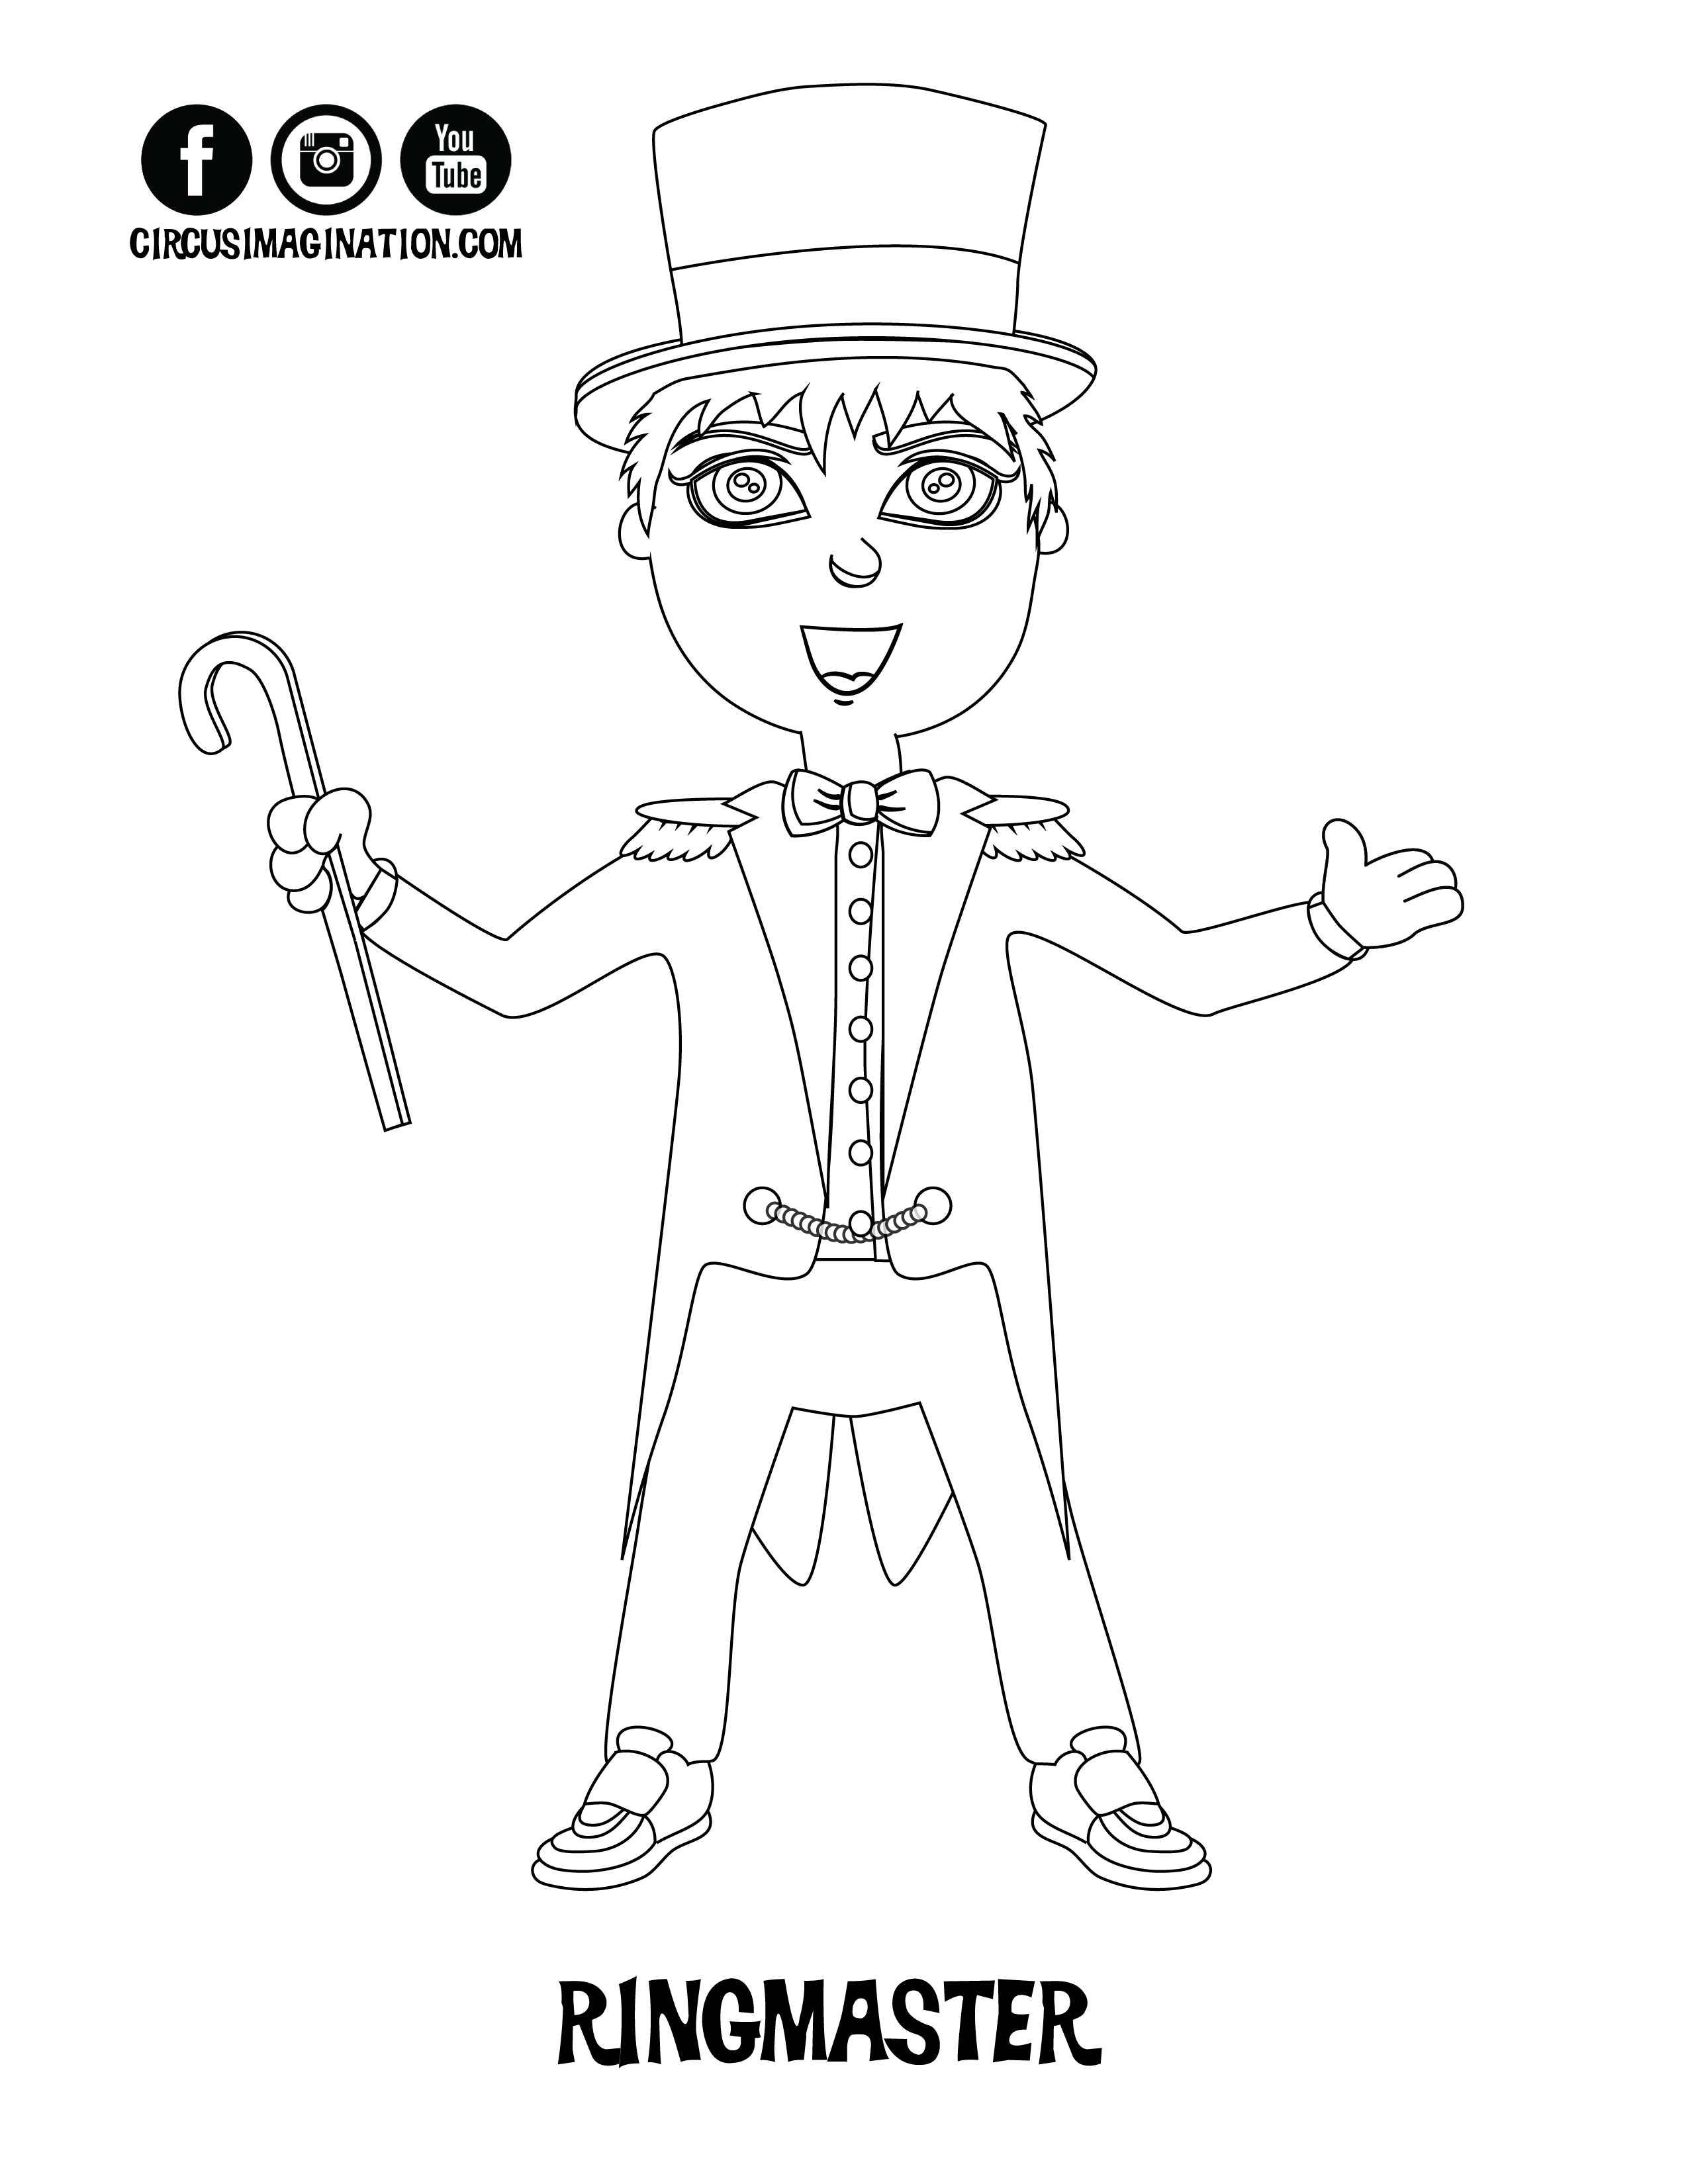 NEW! Exclusive Circus Printables! Coloring Pages and Crossword ...